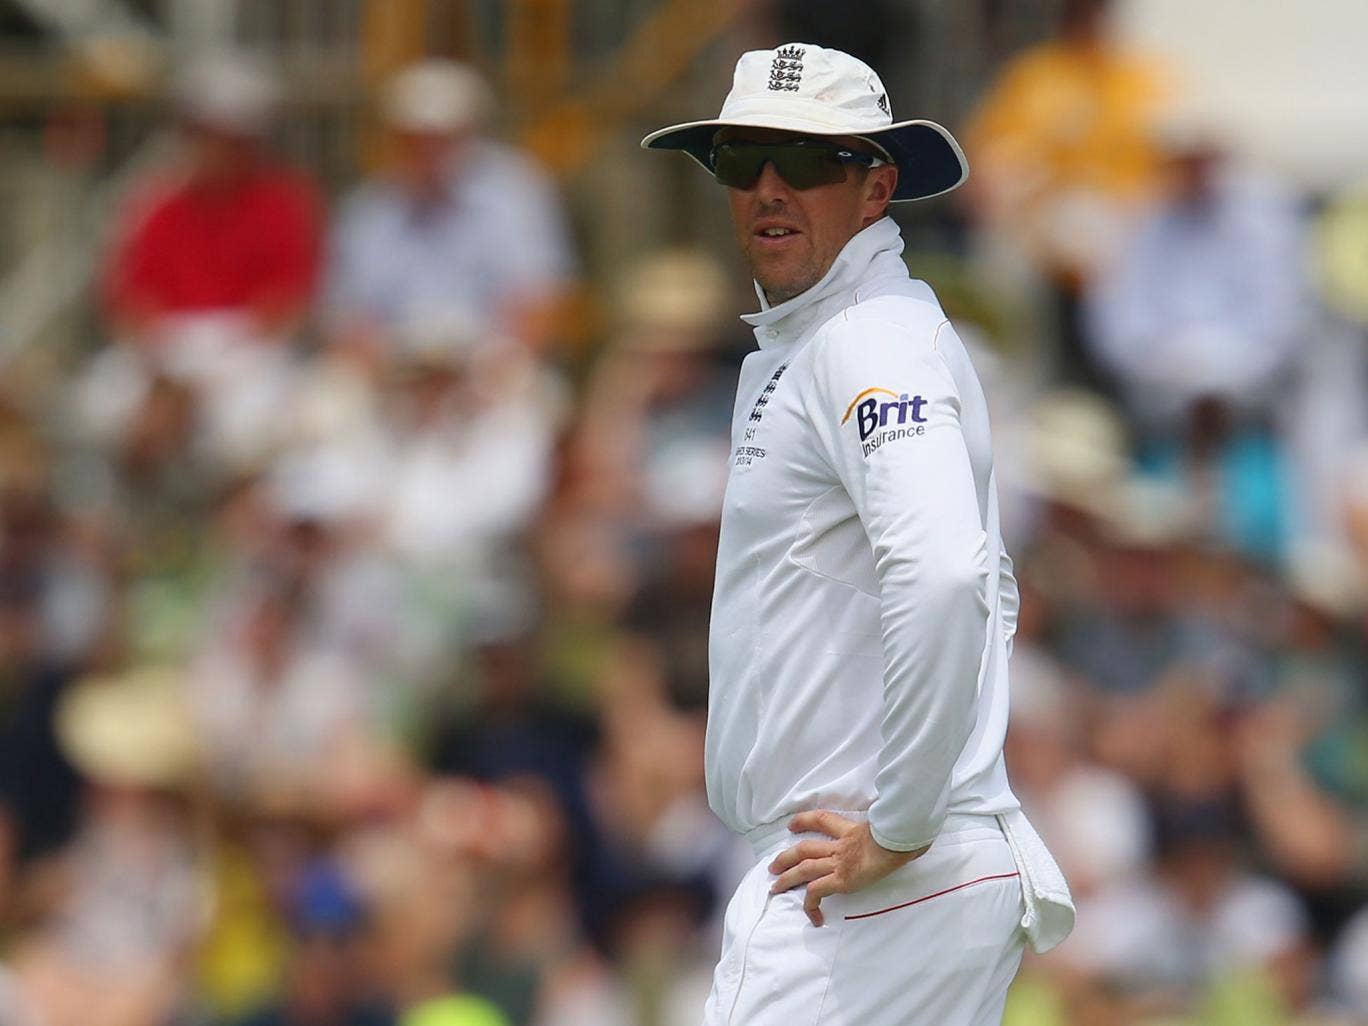 Graeme Swann has apologised for comments he made that drew heavy criticism from rape charities